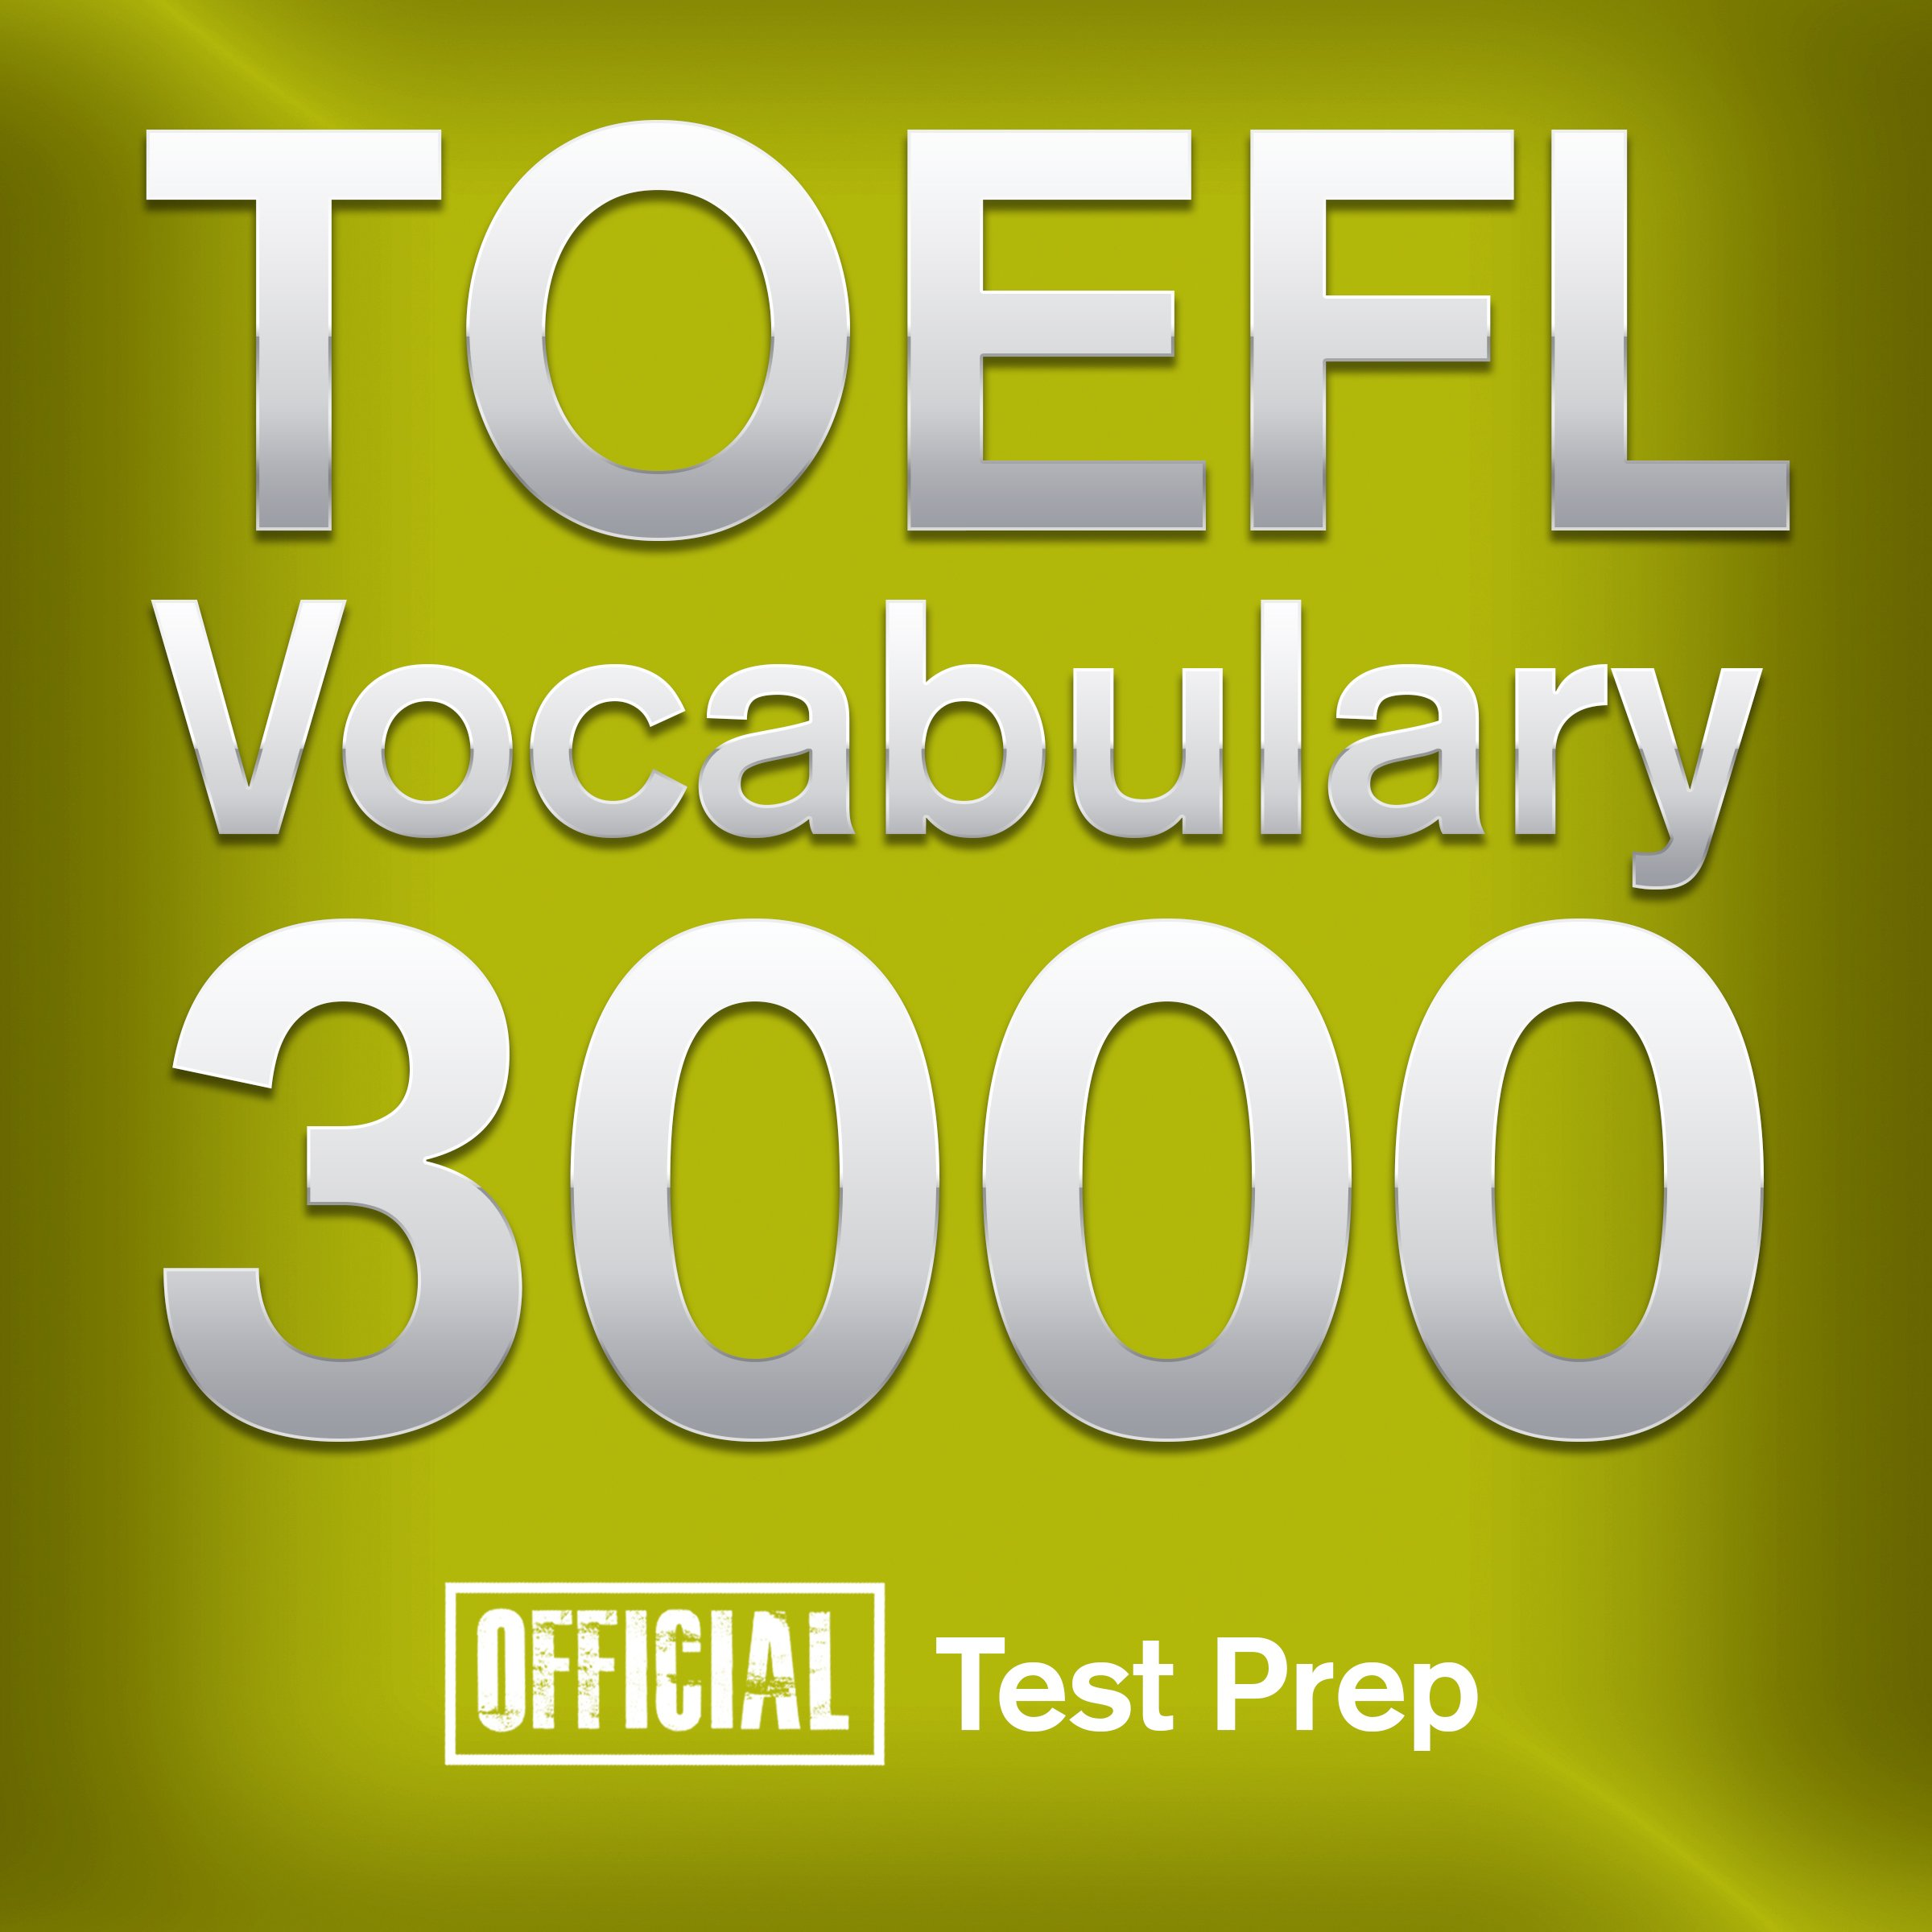 Official TOEFL Vocabulary 3000: Become a True Master of TOEFL Vocabulary. Quickly and Effectively! by AudioLearn